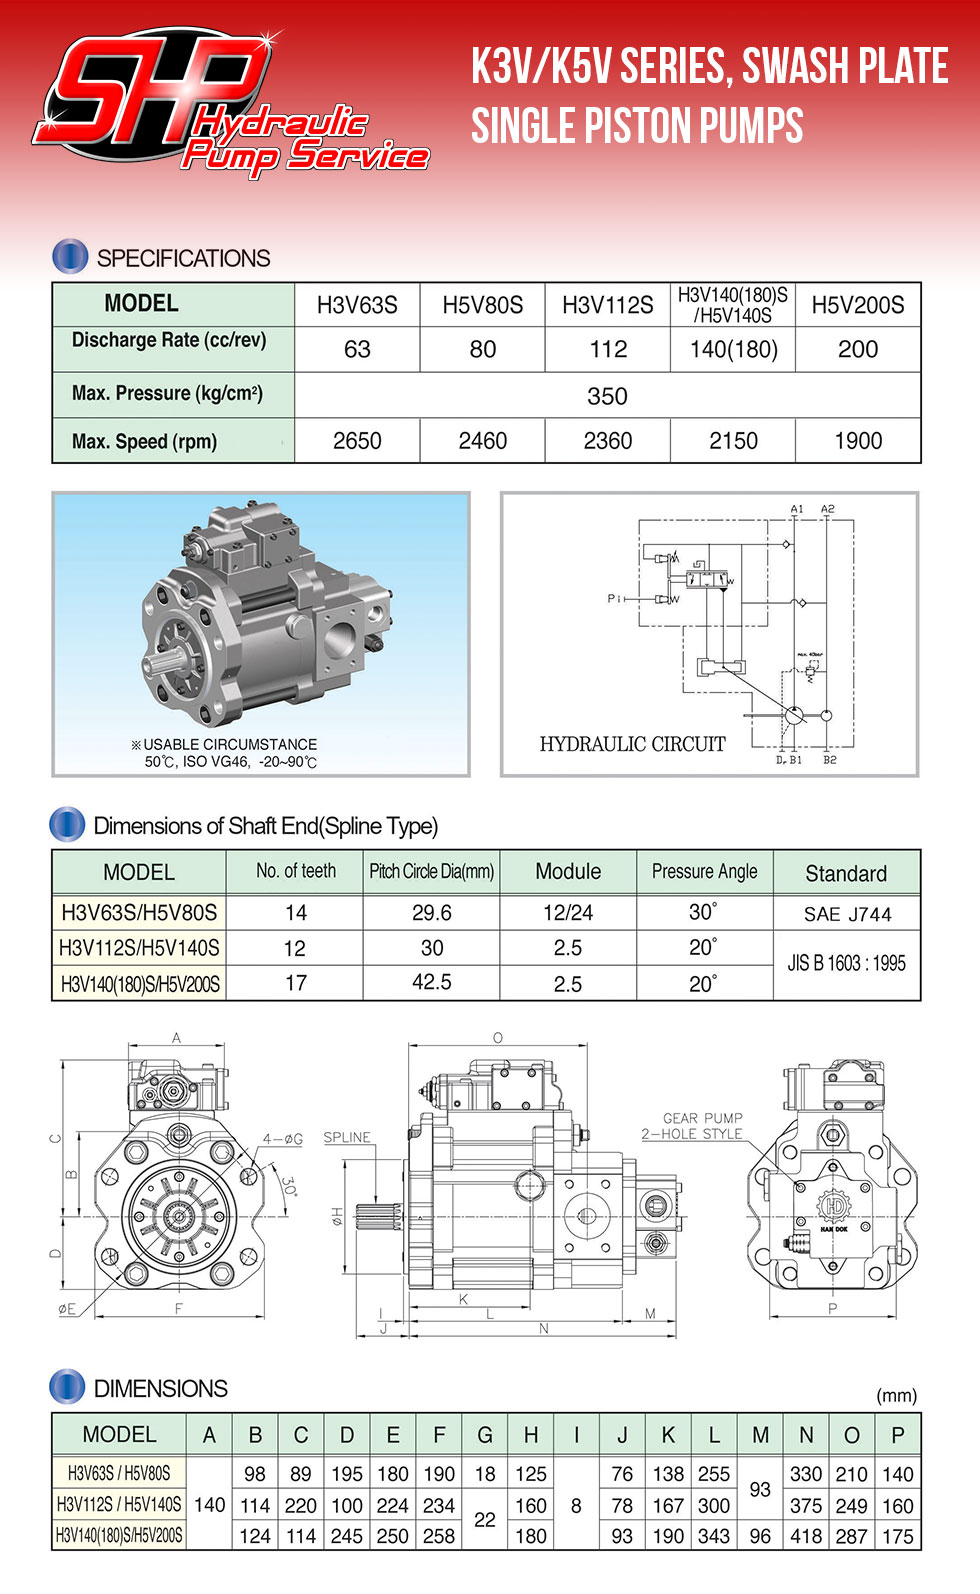 k3v-k5v-single-piston-pumps